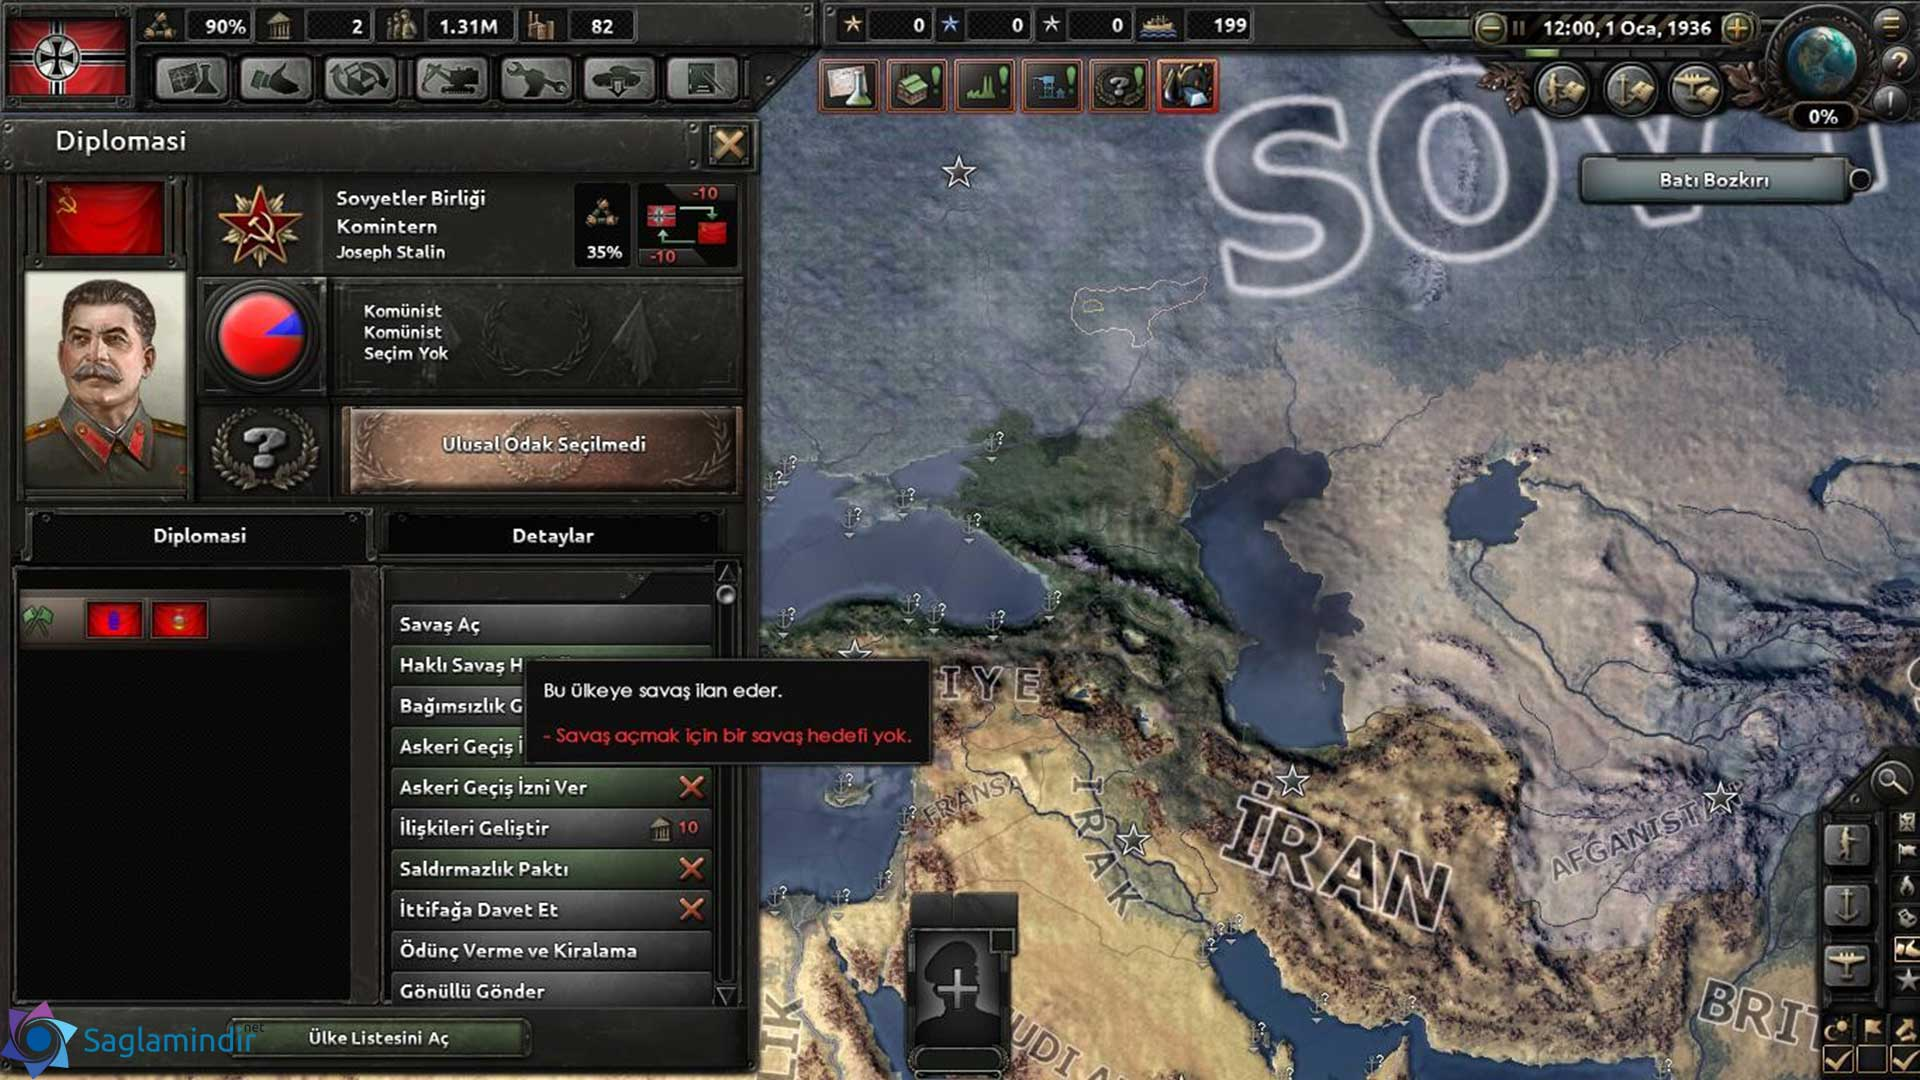 hearts of iron 4 türkçe yama